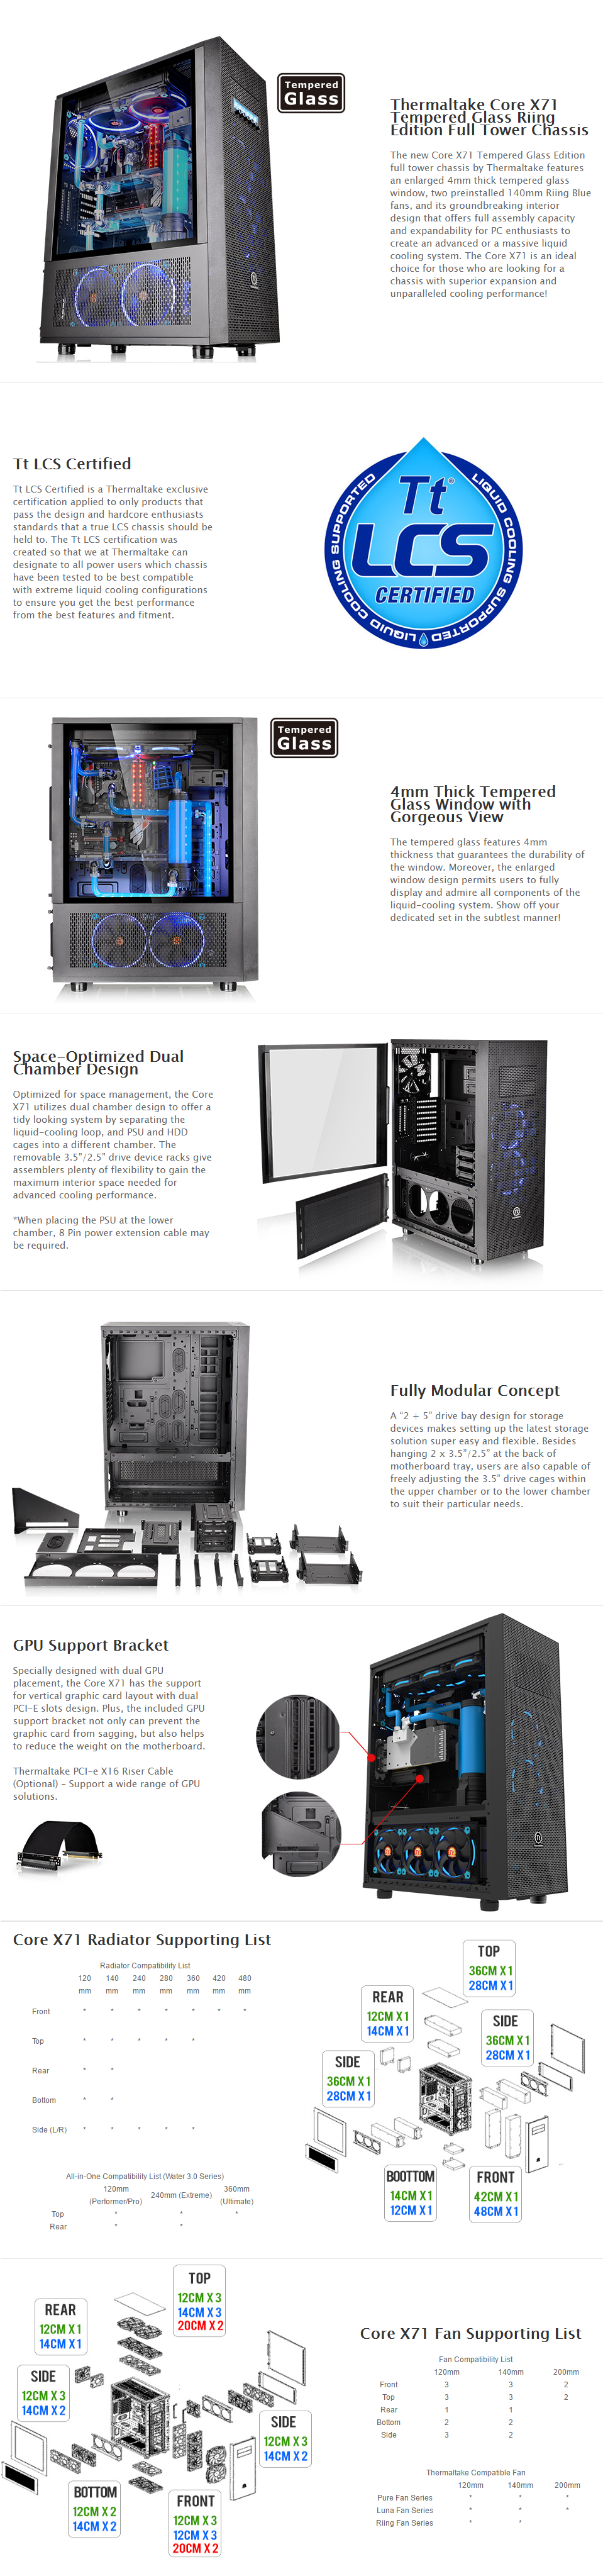 A large marketing image providing additional information about the product Thermaltake Core X71 Tempered Glass Riing Edition Full Tower Case - Additional alt info not provided